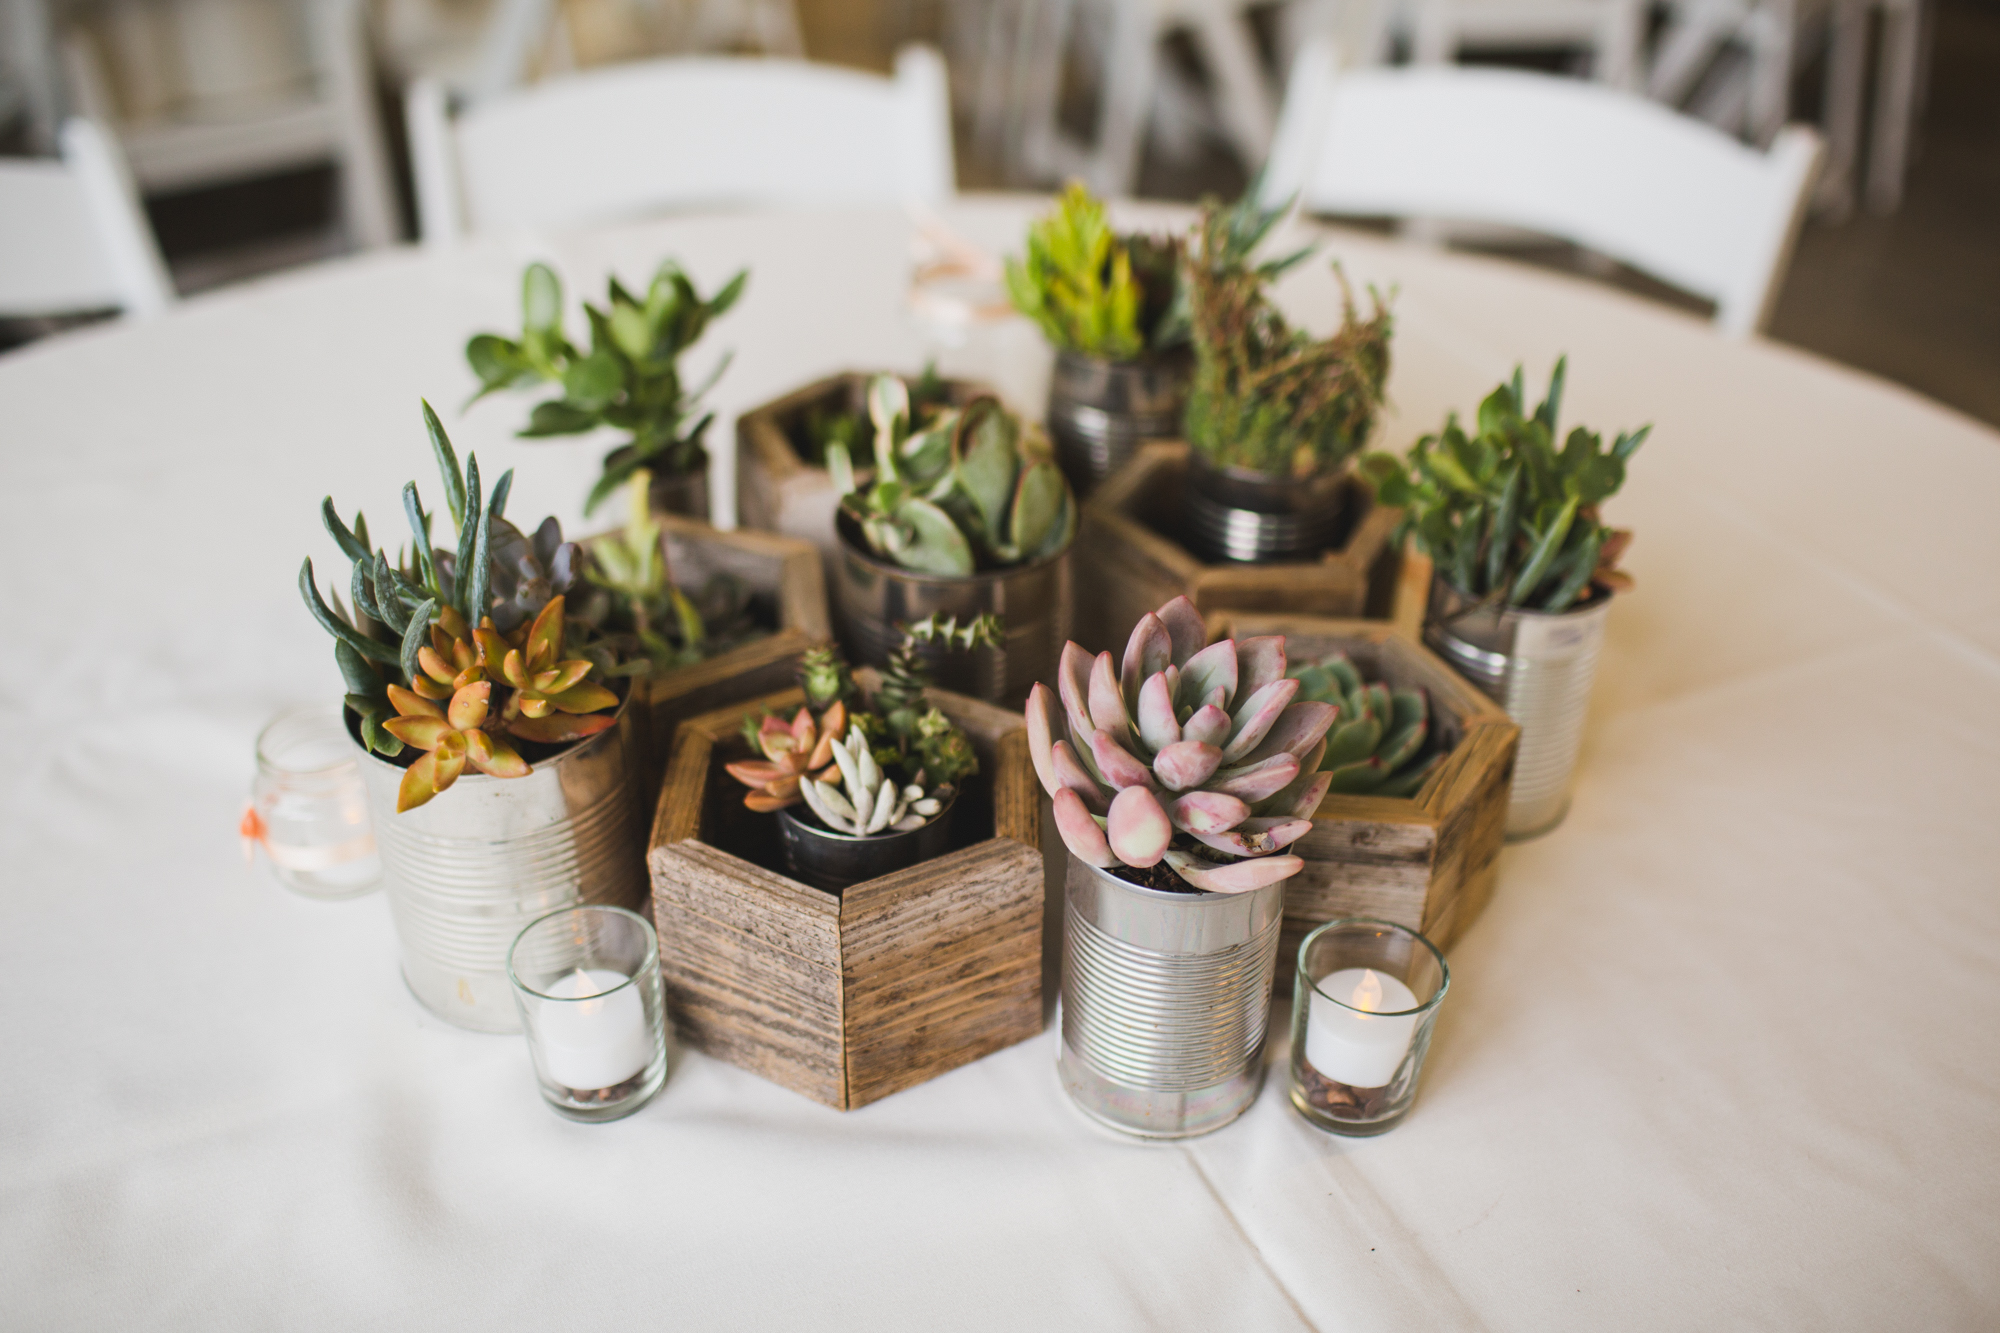 Amazing diy wedding centerpieces 2 succulents in recycled planters solutioingenieria Gallery